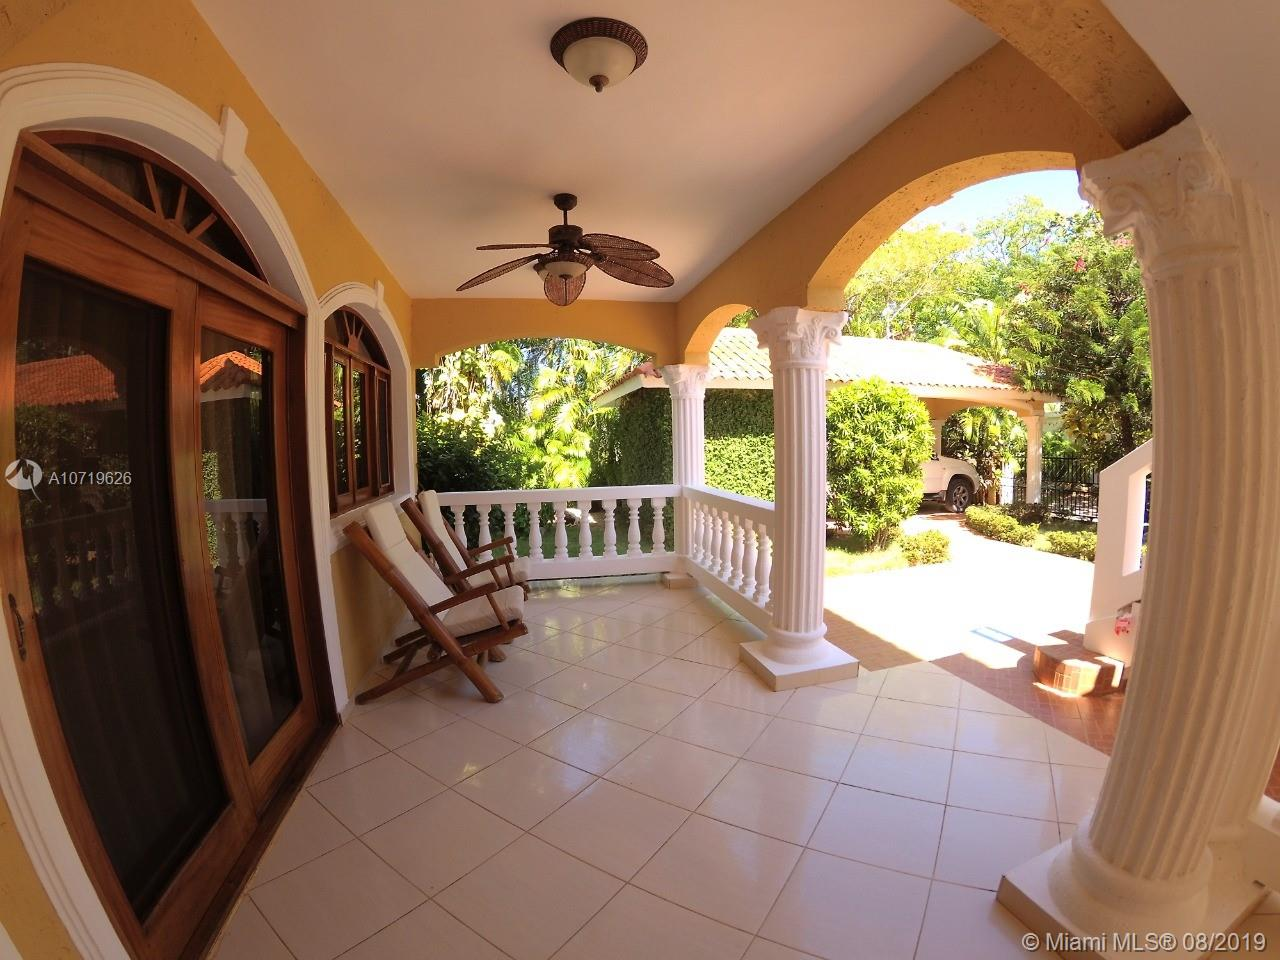 , Other City - Keys/Islands/Caribbean, FL 57000